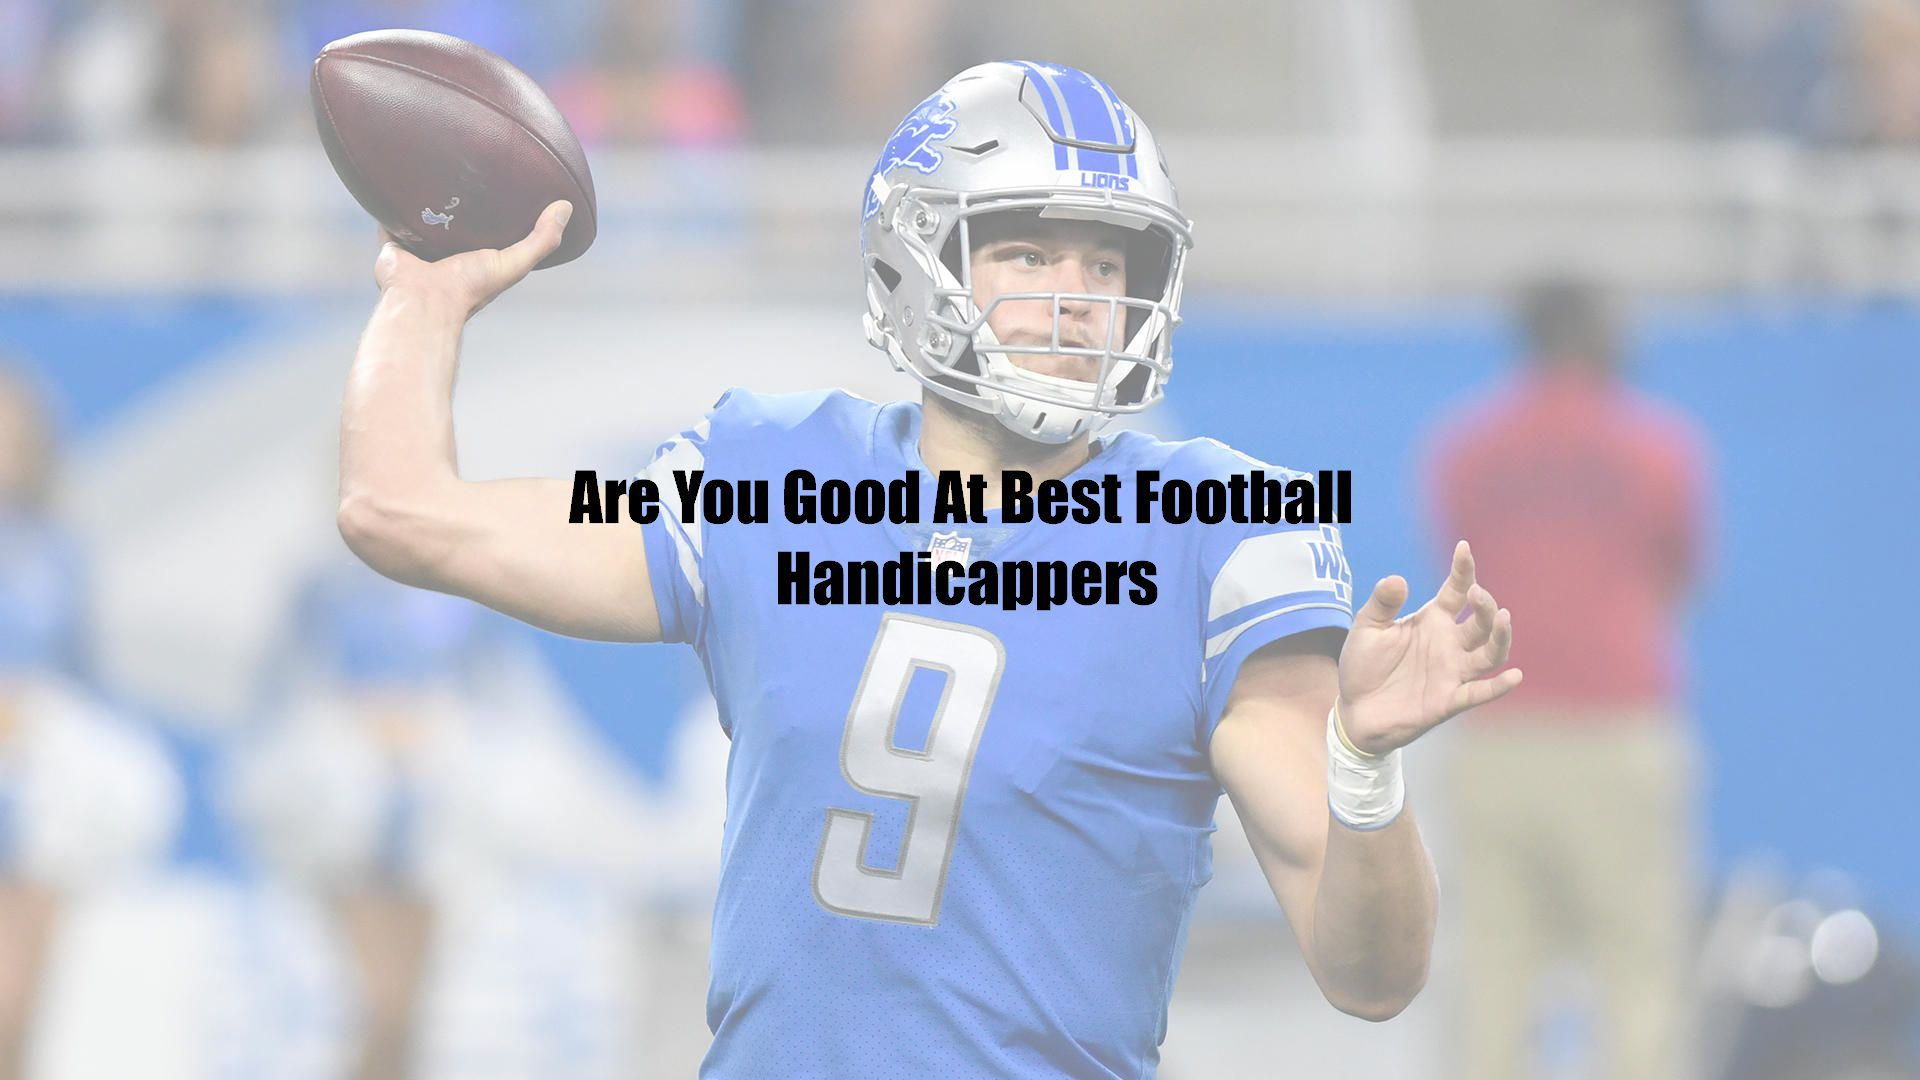 Are You Good At Best Football Handicappers